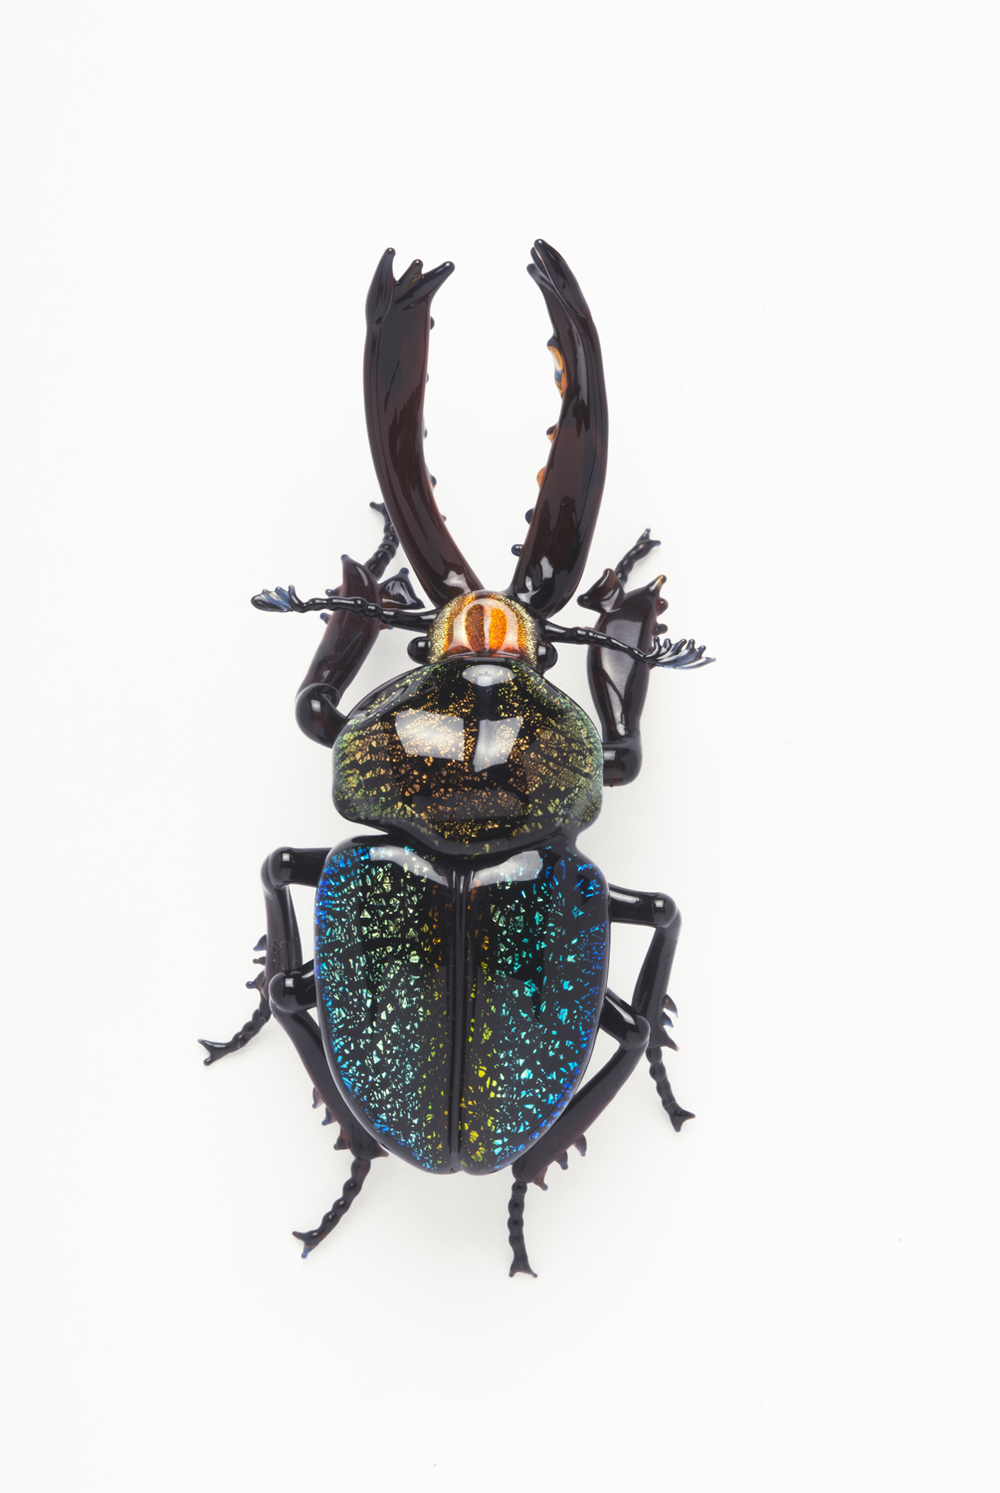 Vittorio Costantini,  Cerambycidae  (2007, soda-lime glass, 2 1/2 x 1 1/4 x 3/4 inches), VC.142